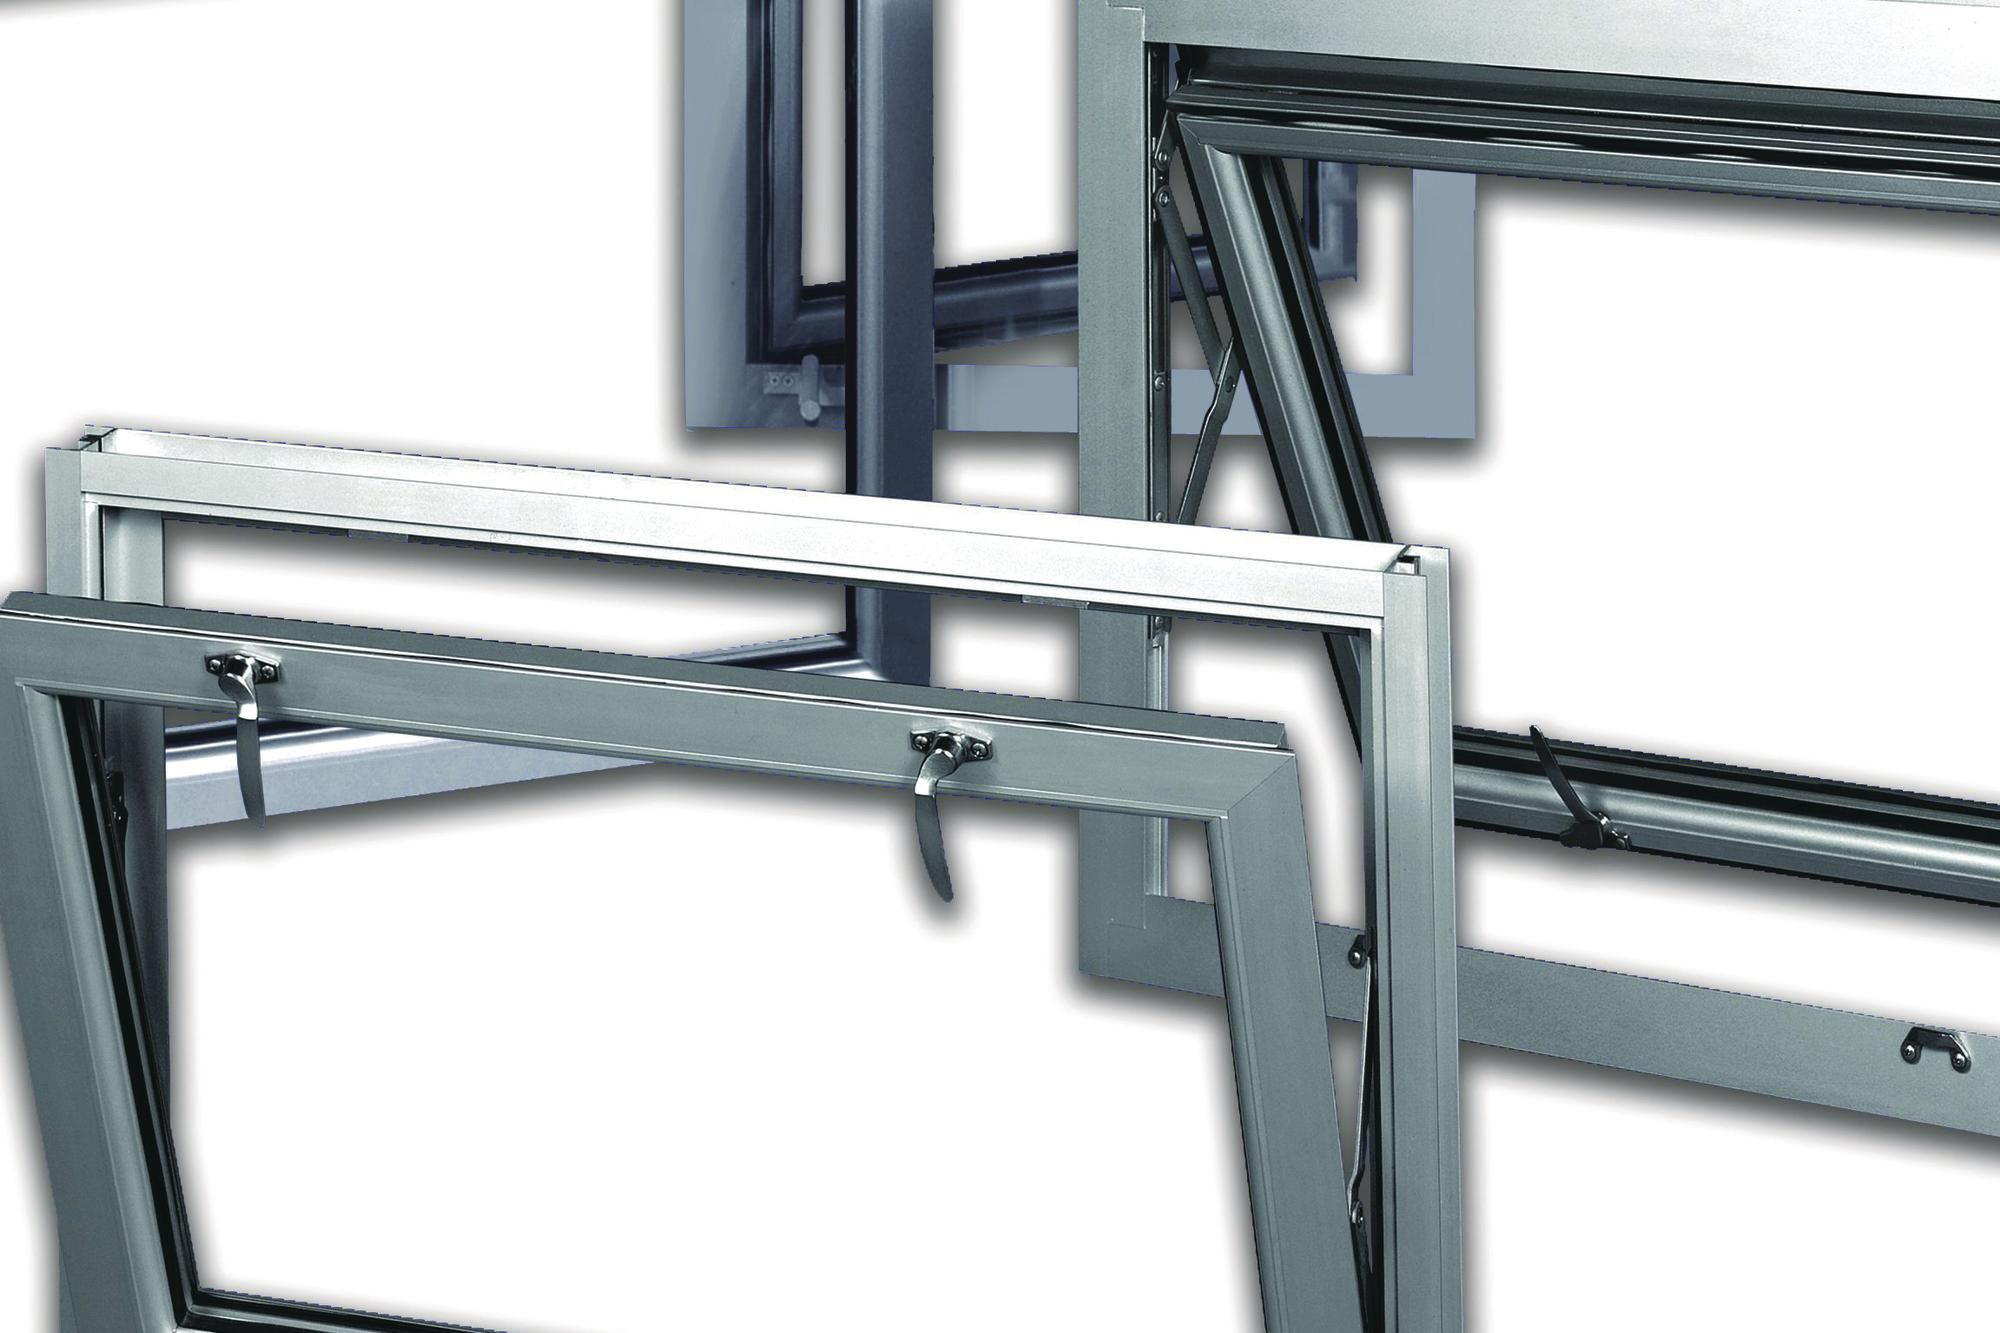 Crystal Window U0026 Door Systems AAMA 2604 | Architect Magazine | Building  Envelope, Finishes And Surfaces, Exteriors, Associations, American  Architectural ...